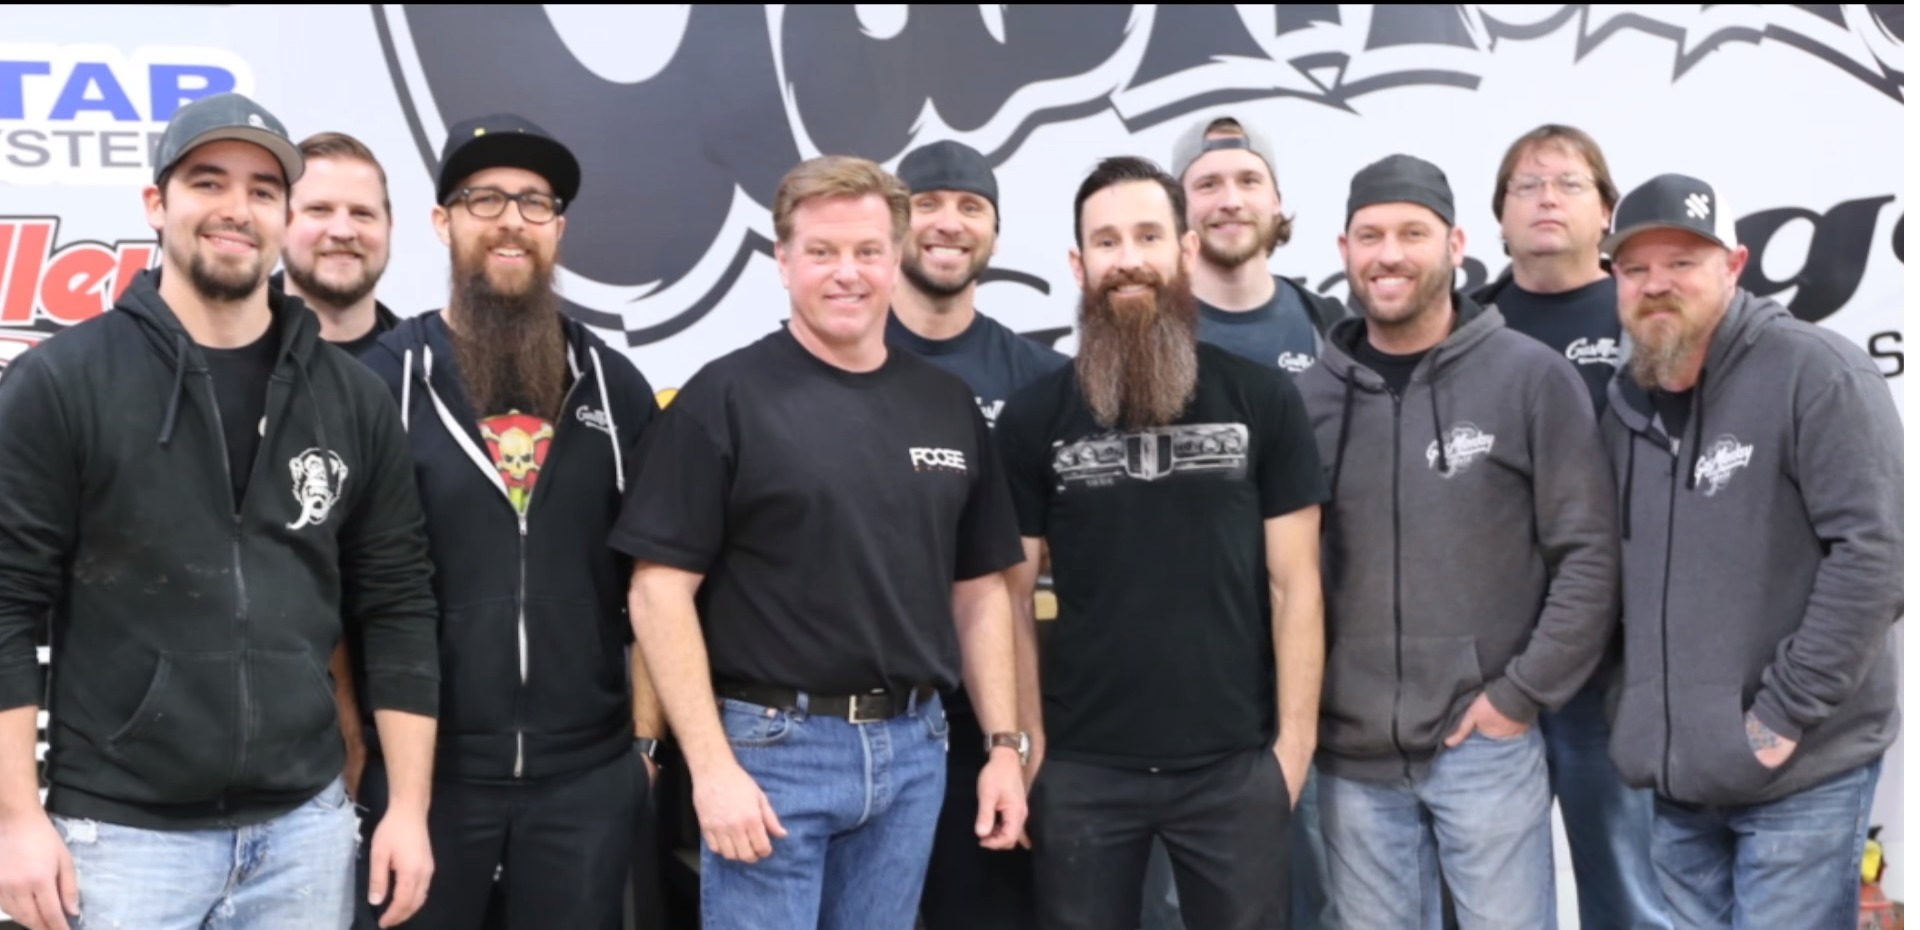 Chip Foose with Gas Mokey Garage team